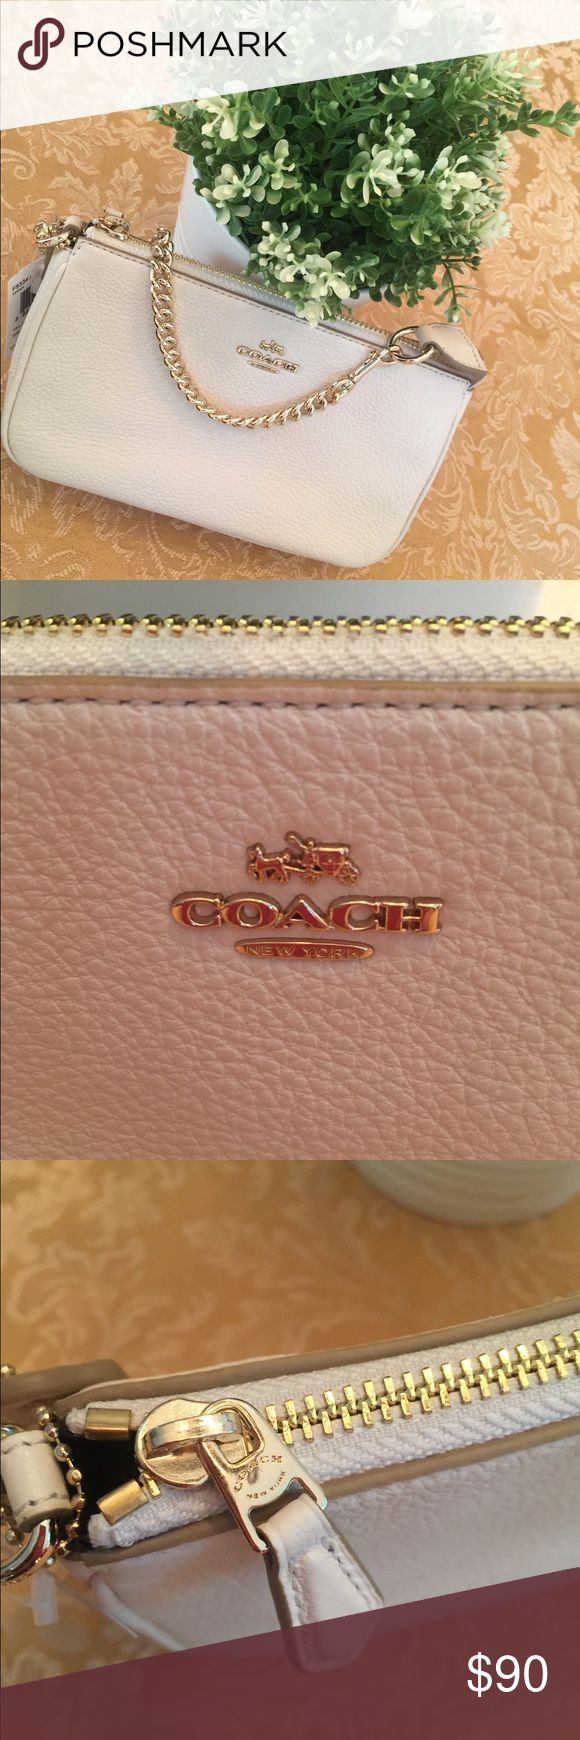 Large Coach Wristlet with Gold Chain Large Coach wristlet in white pebble leather and gold chain strap. Coach Accessories Hats